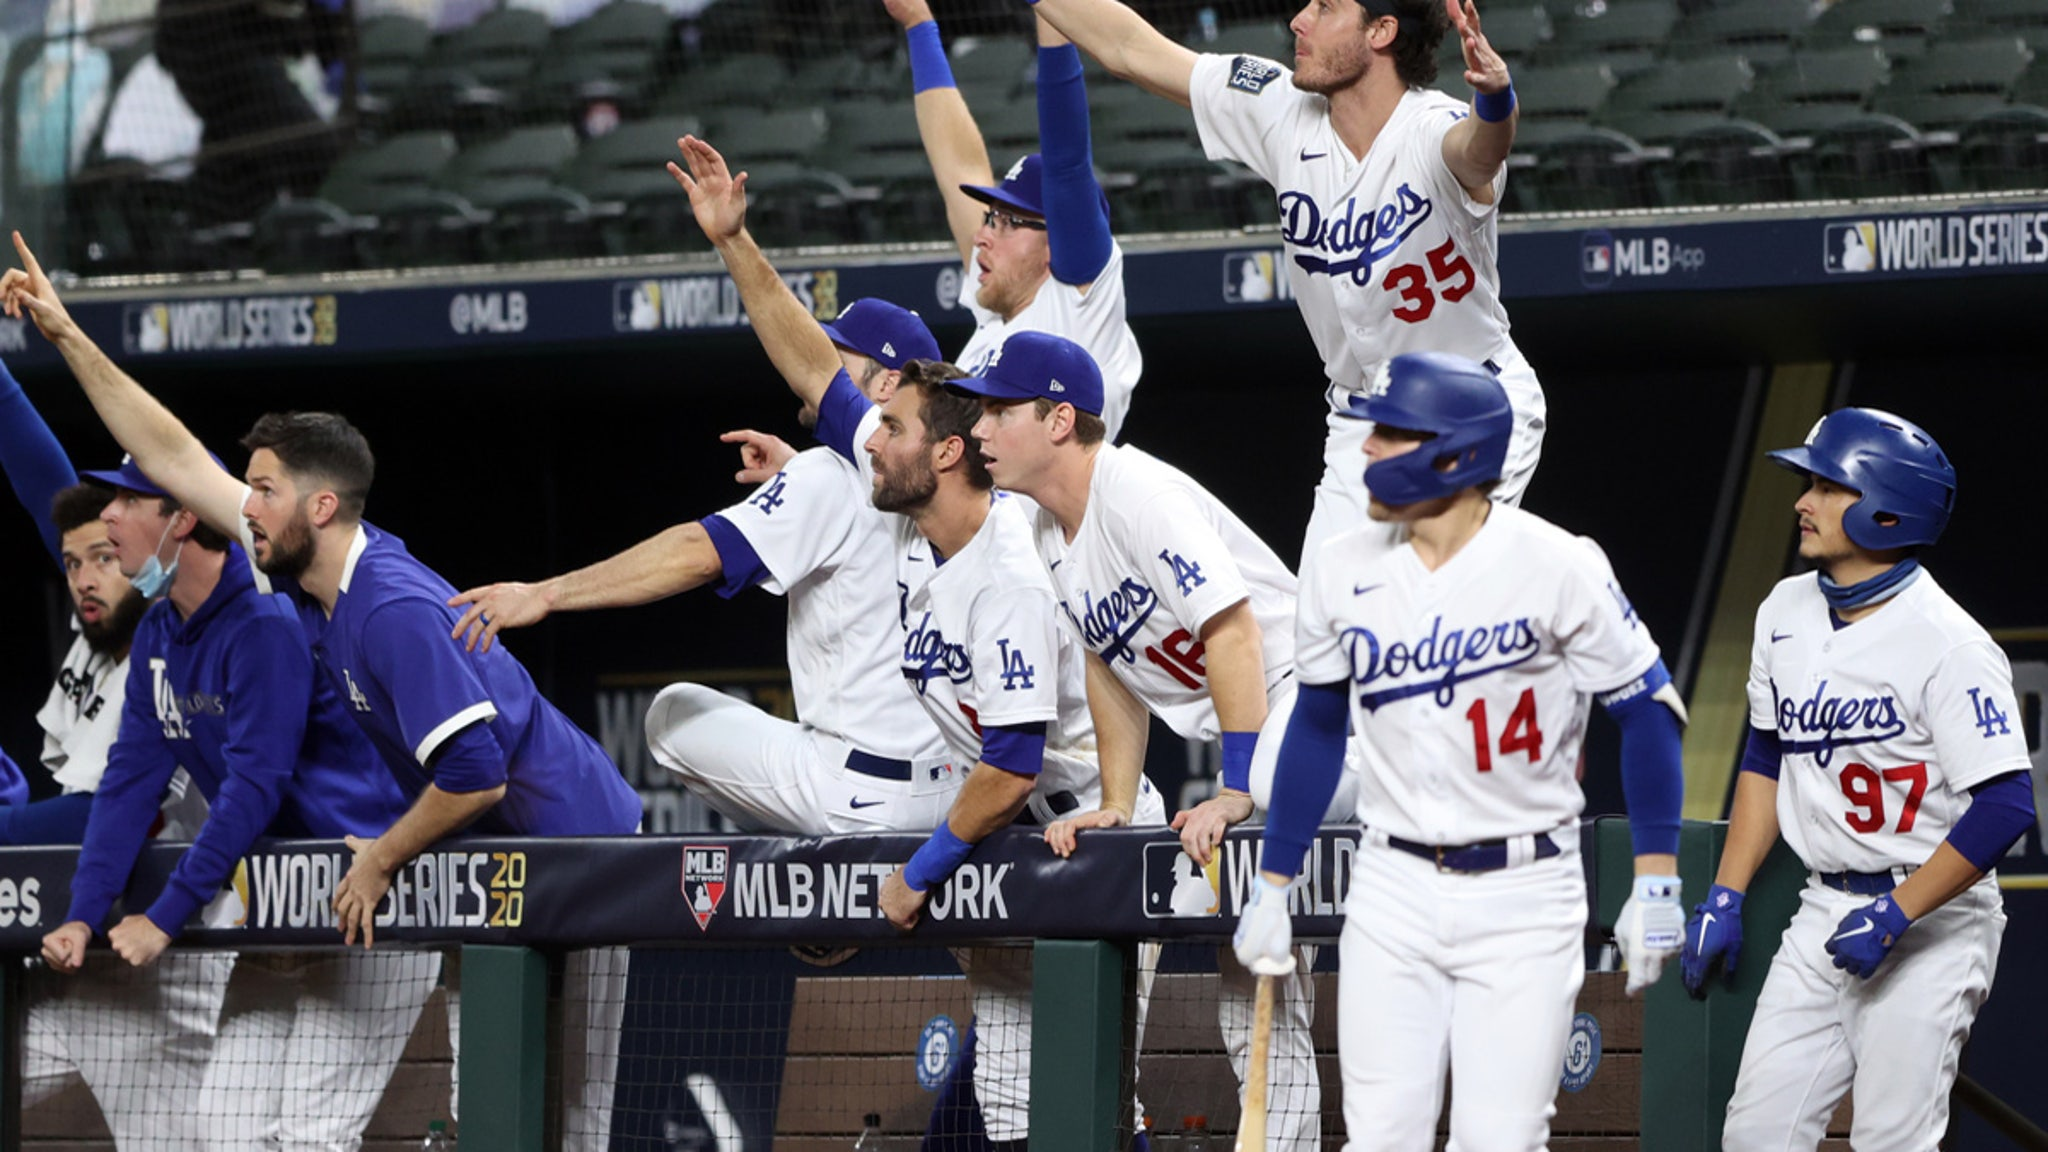 L.A. Dodgers World Series Champs! ... First Title In 32 Years!